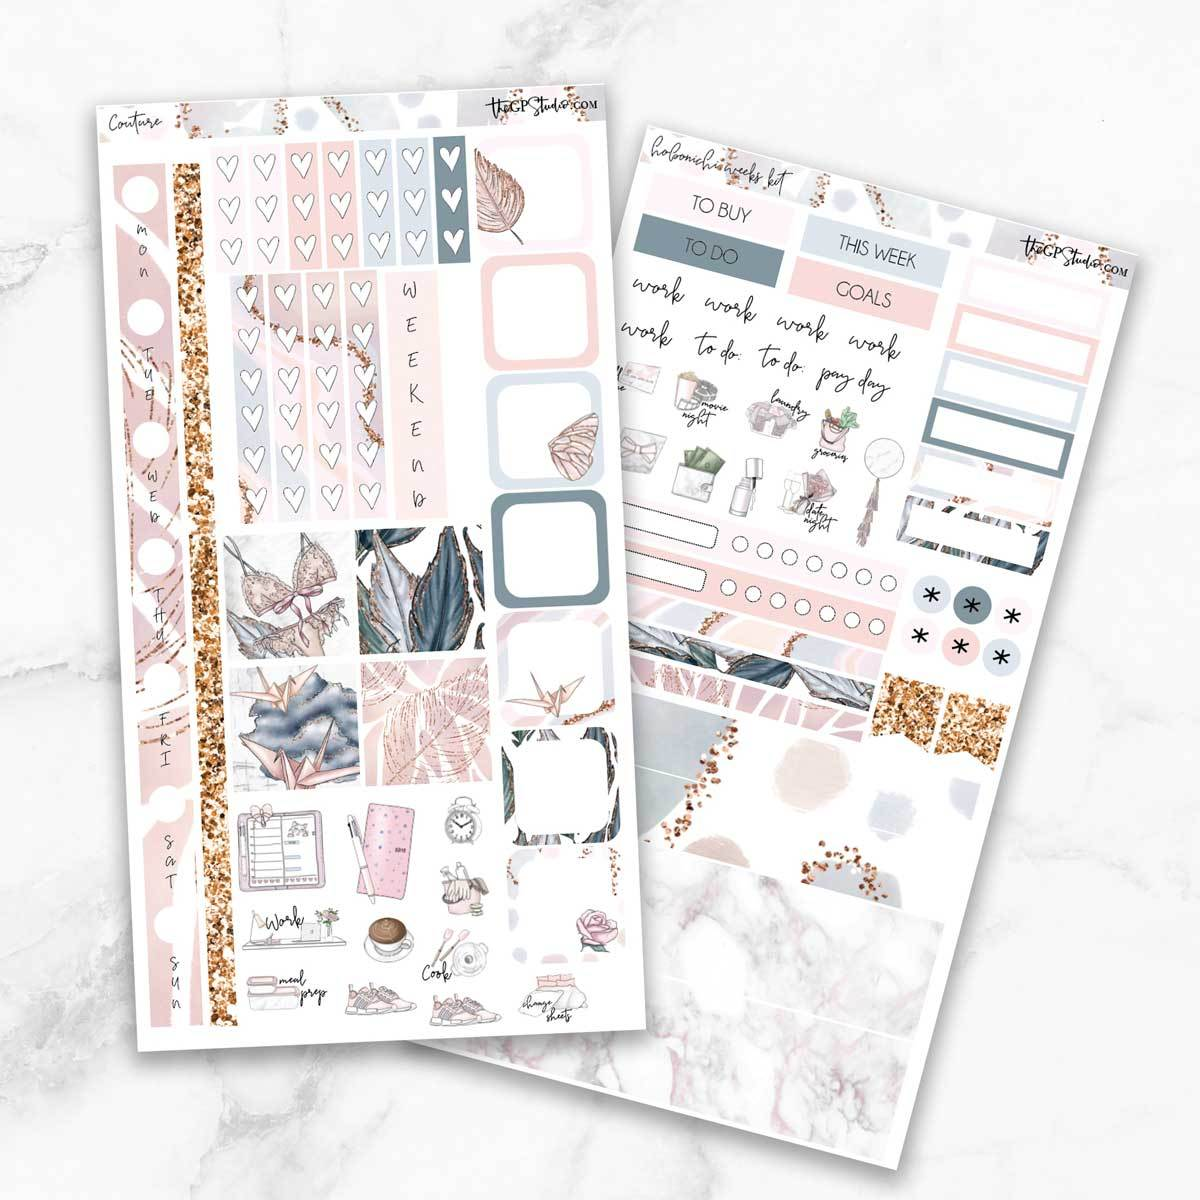 COUTURE Hobonichi Weekly Size Planner Sticker Kit-The GP Studio